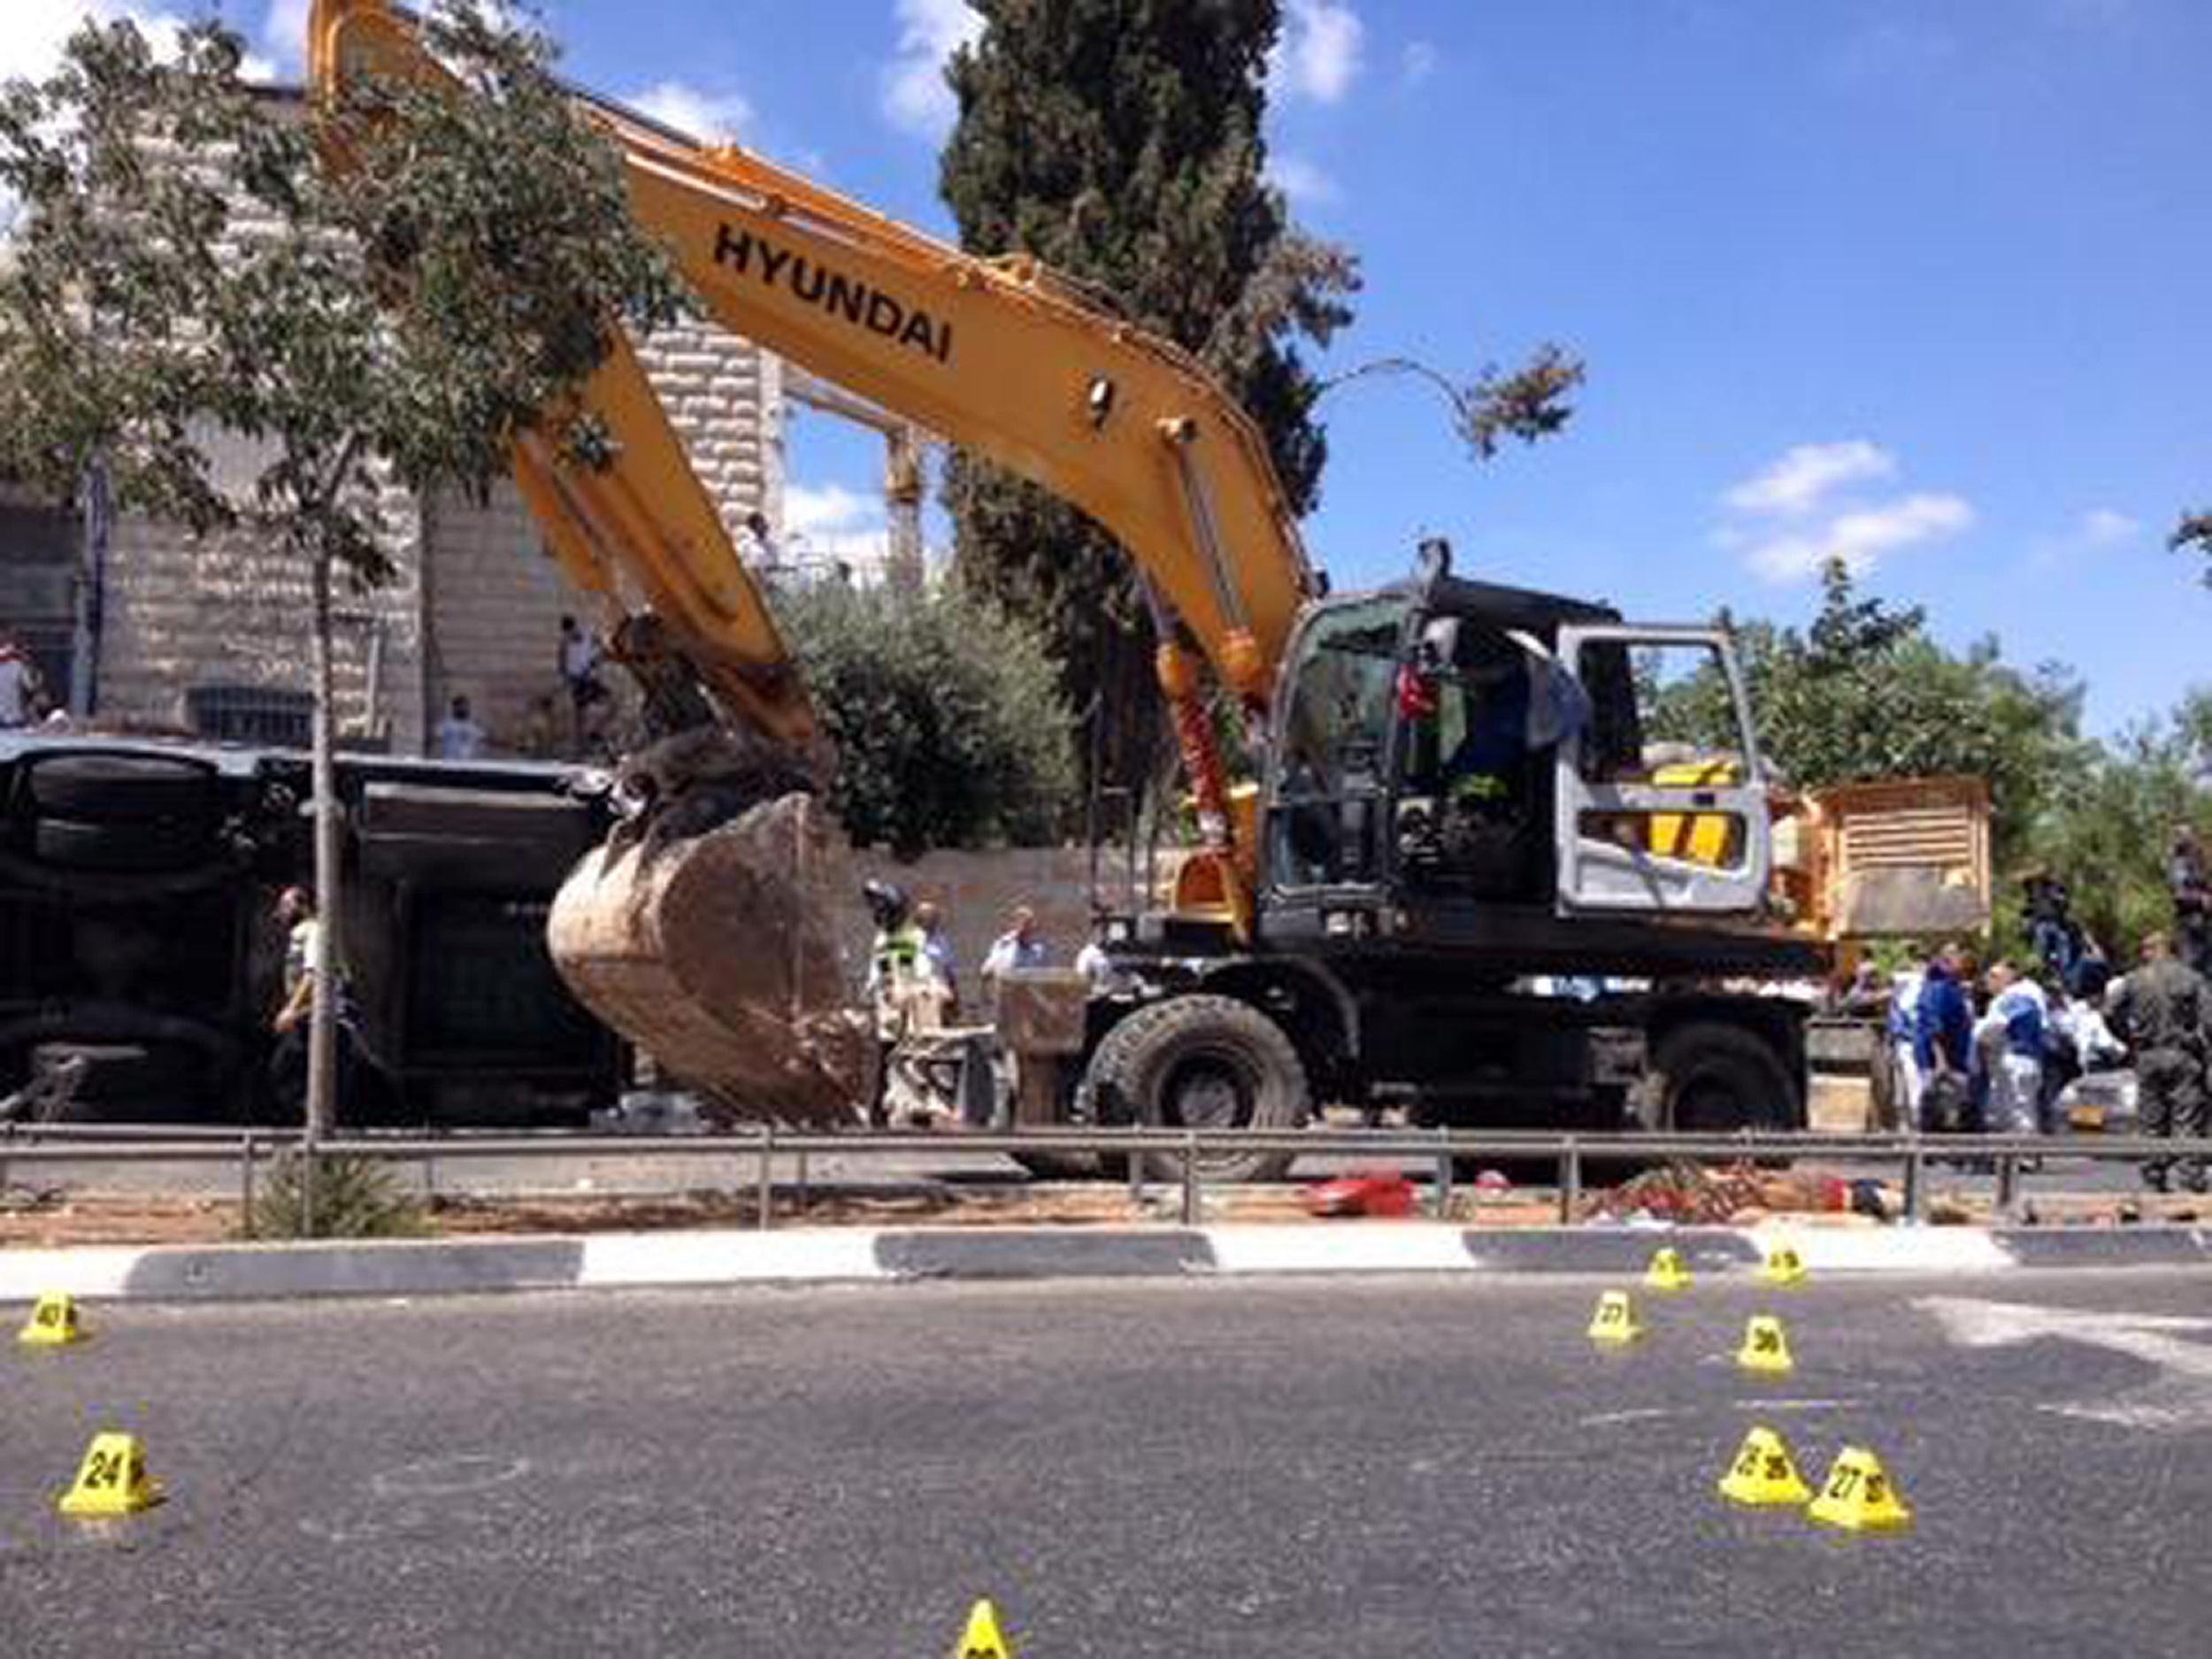 A tractor at the scene of what police described as a terrorist attack in Jerusalem on August 4, 2014.